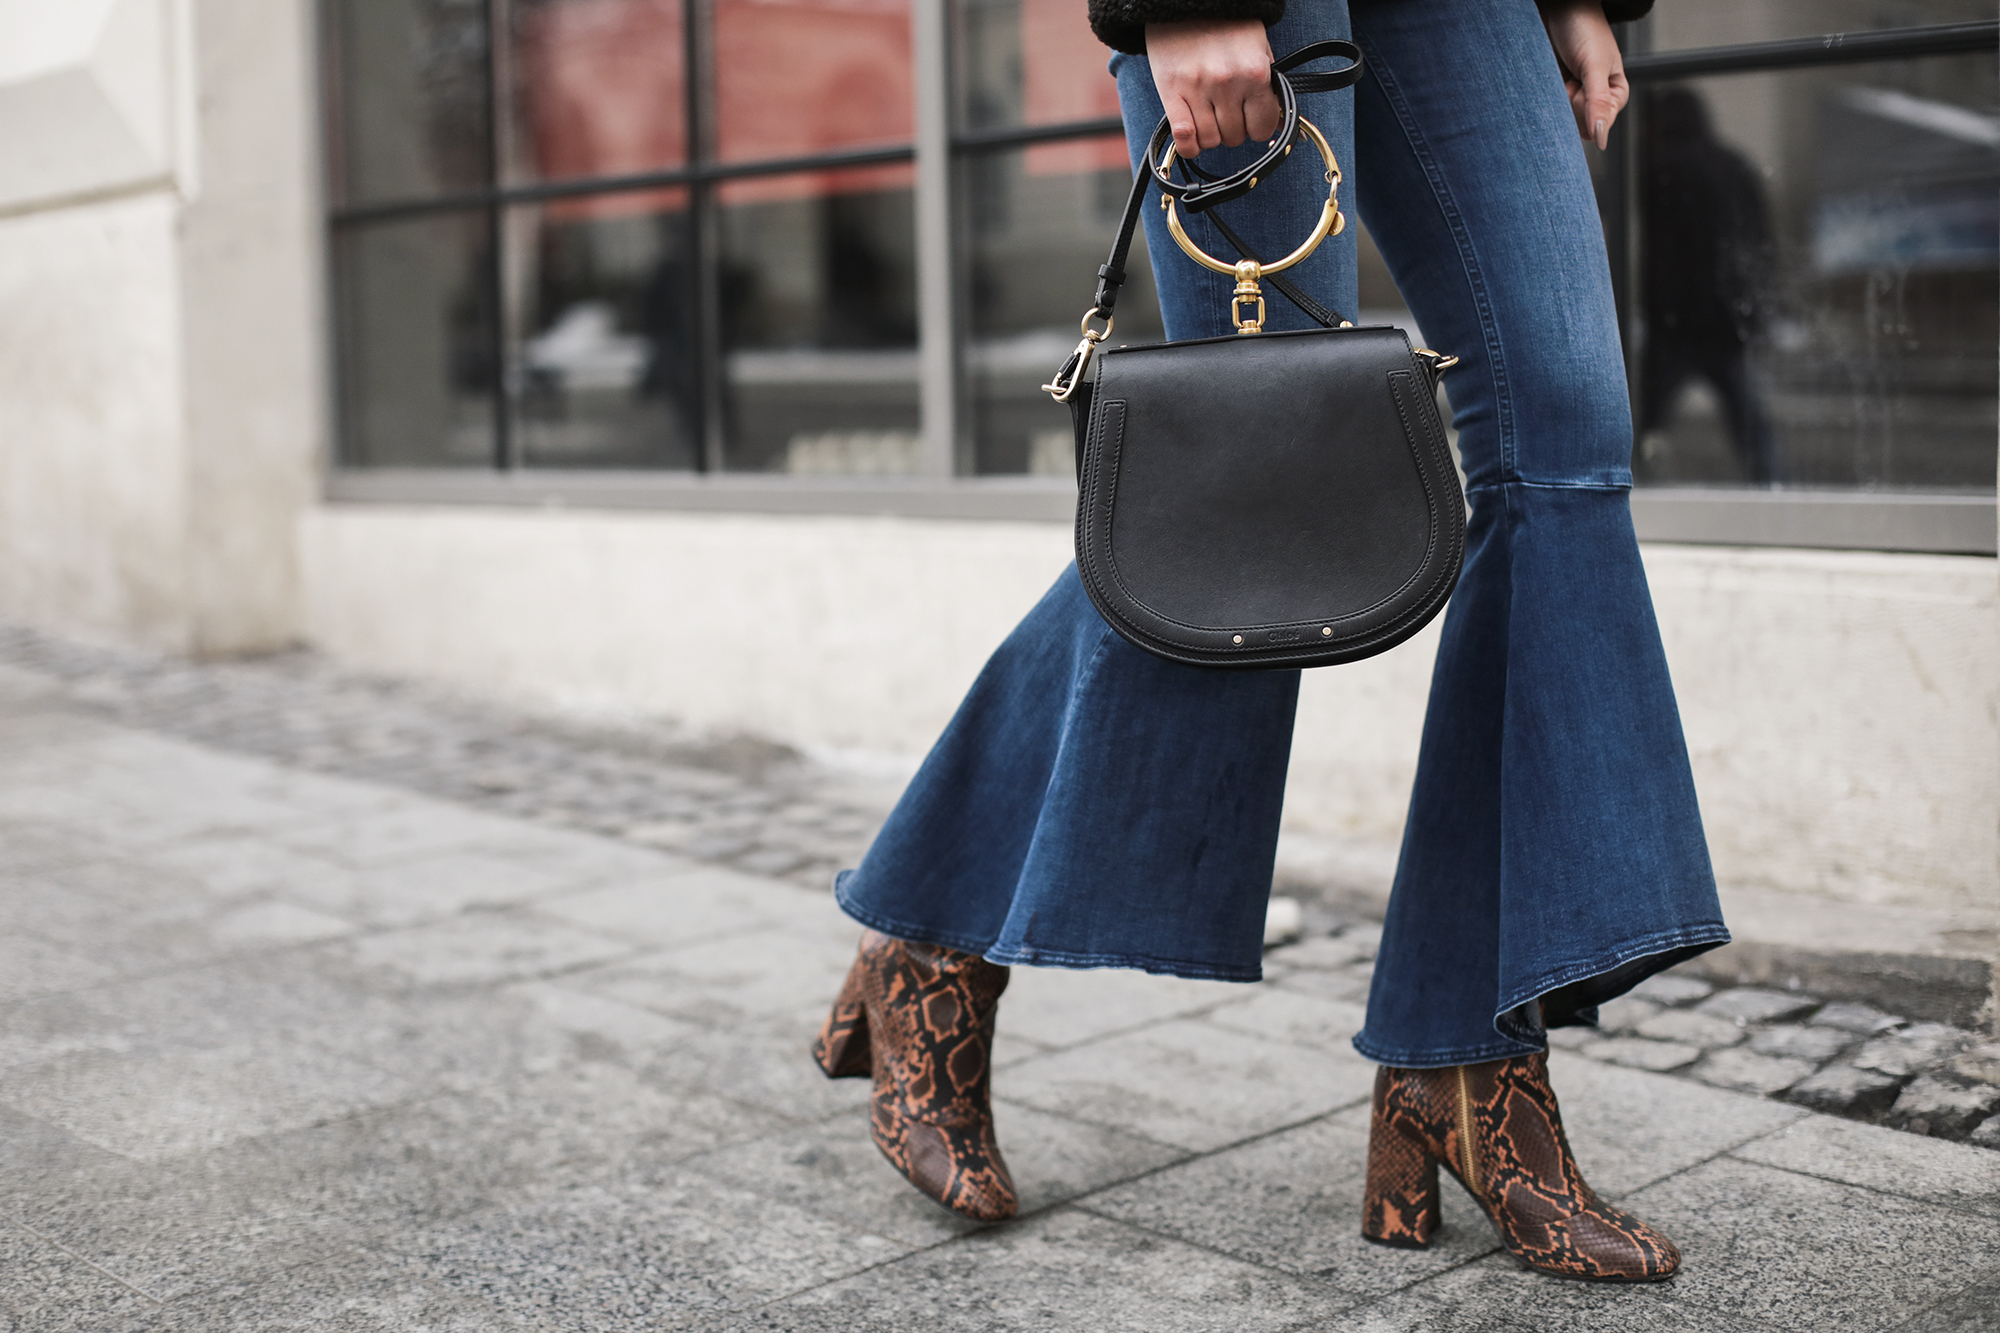 snake-print-ankle-boots-outfit-street-style